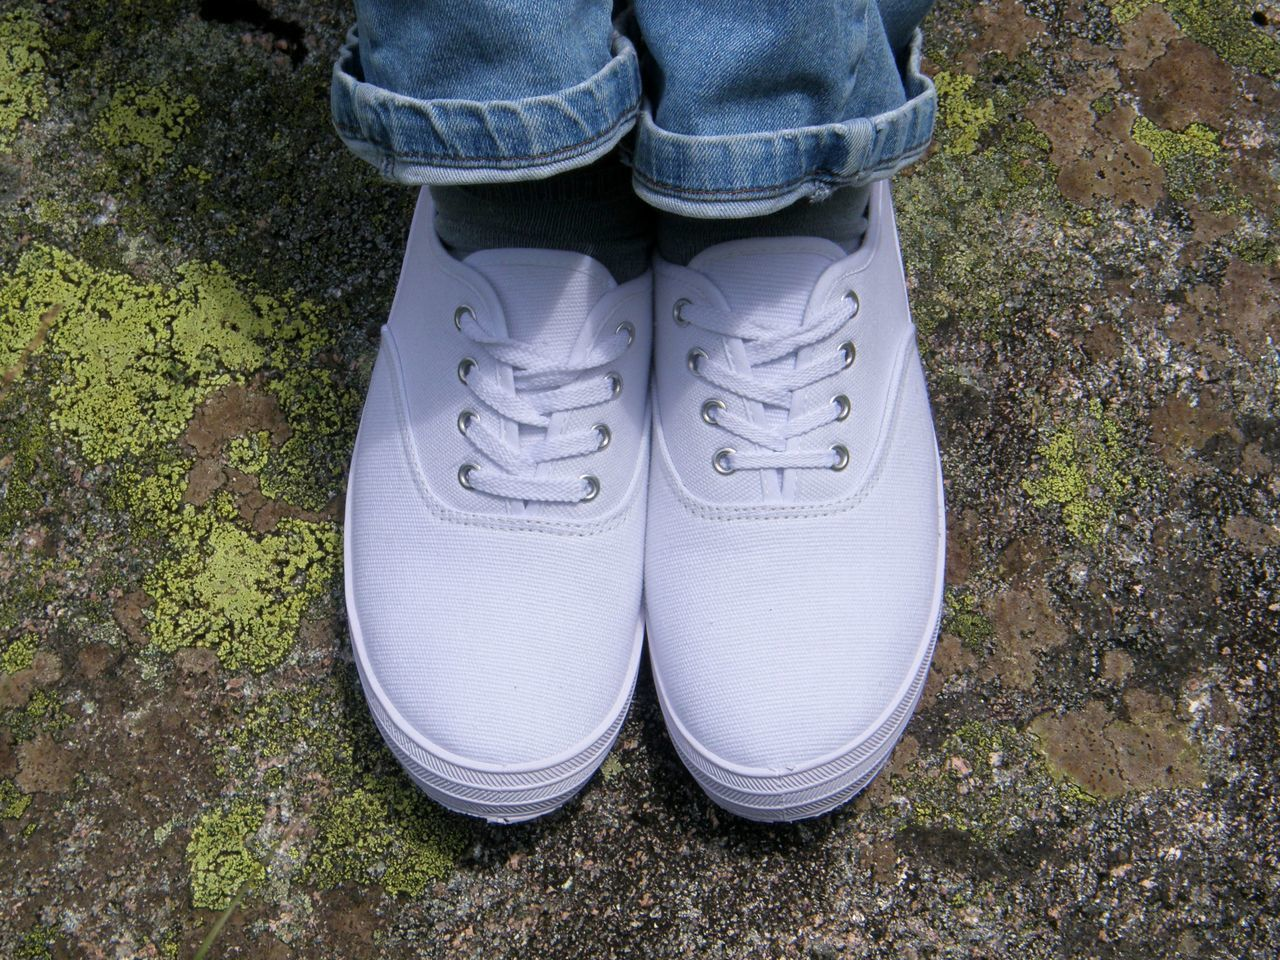 Adult Canvas Shoe Close-up Day Feet Grass High Angle View Human Body Part Laces Leisure Activity Lifestyles New Shoes One Person Outdoors People Shoe Shoes Soilless Standing White Shoes